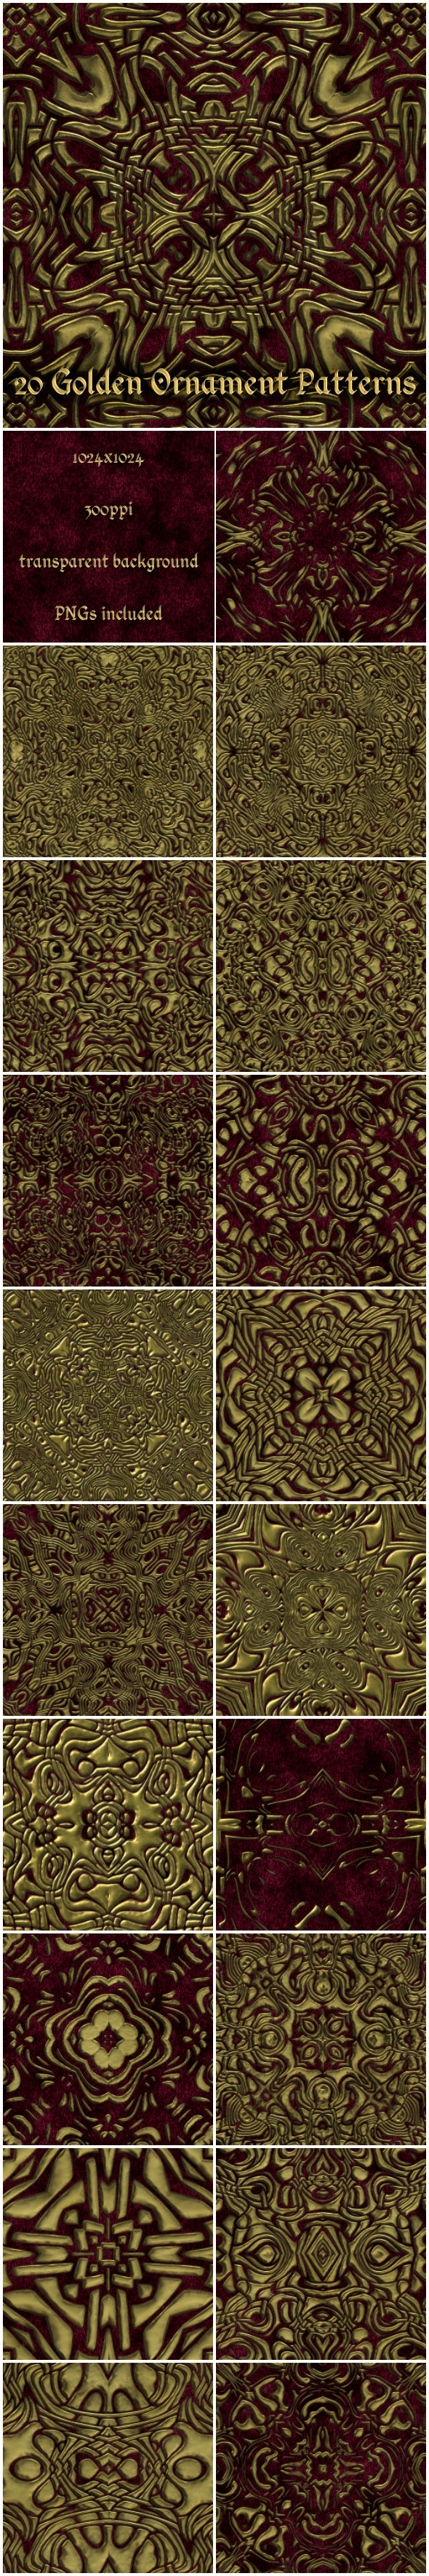 20 Gold Ornament Patterns - Miscellaneous Textures / Fills / Patterns